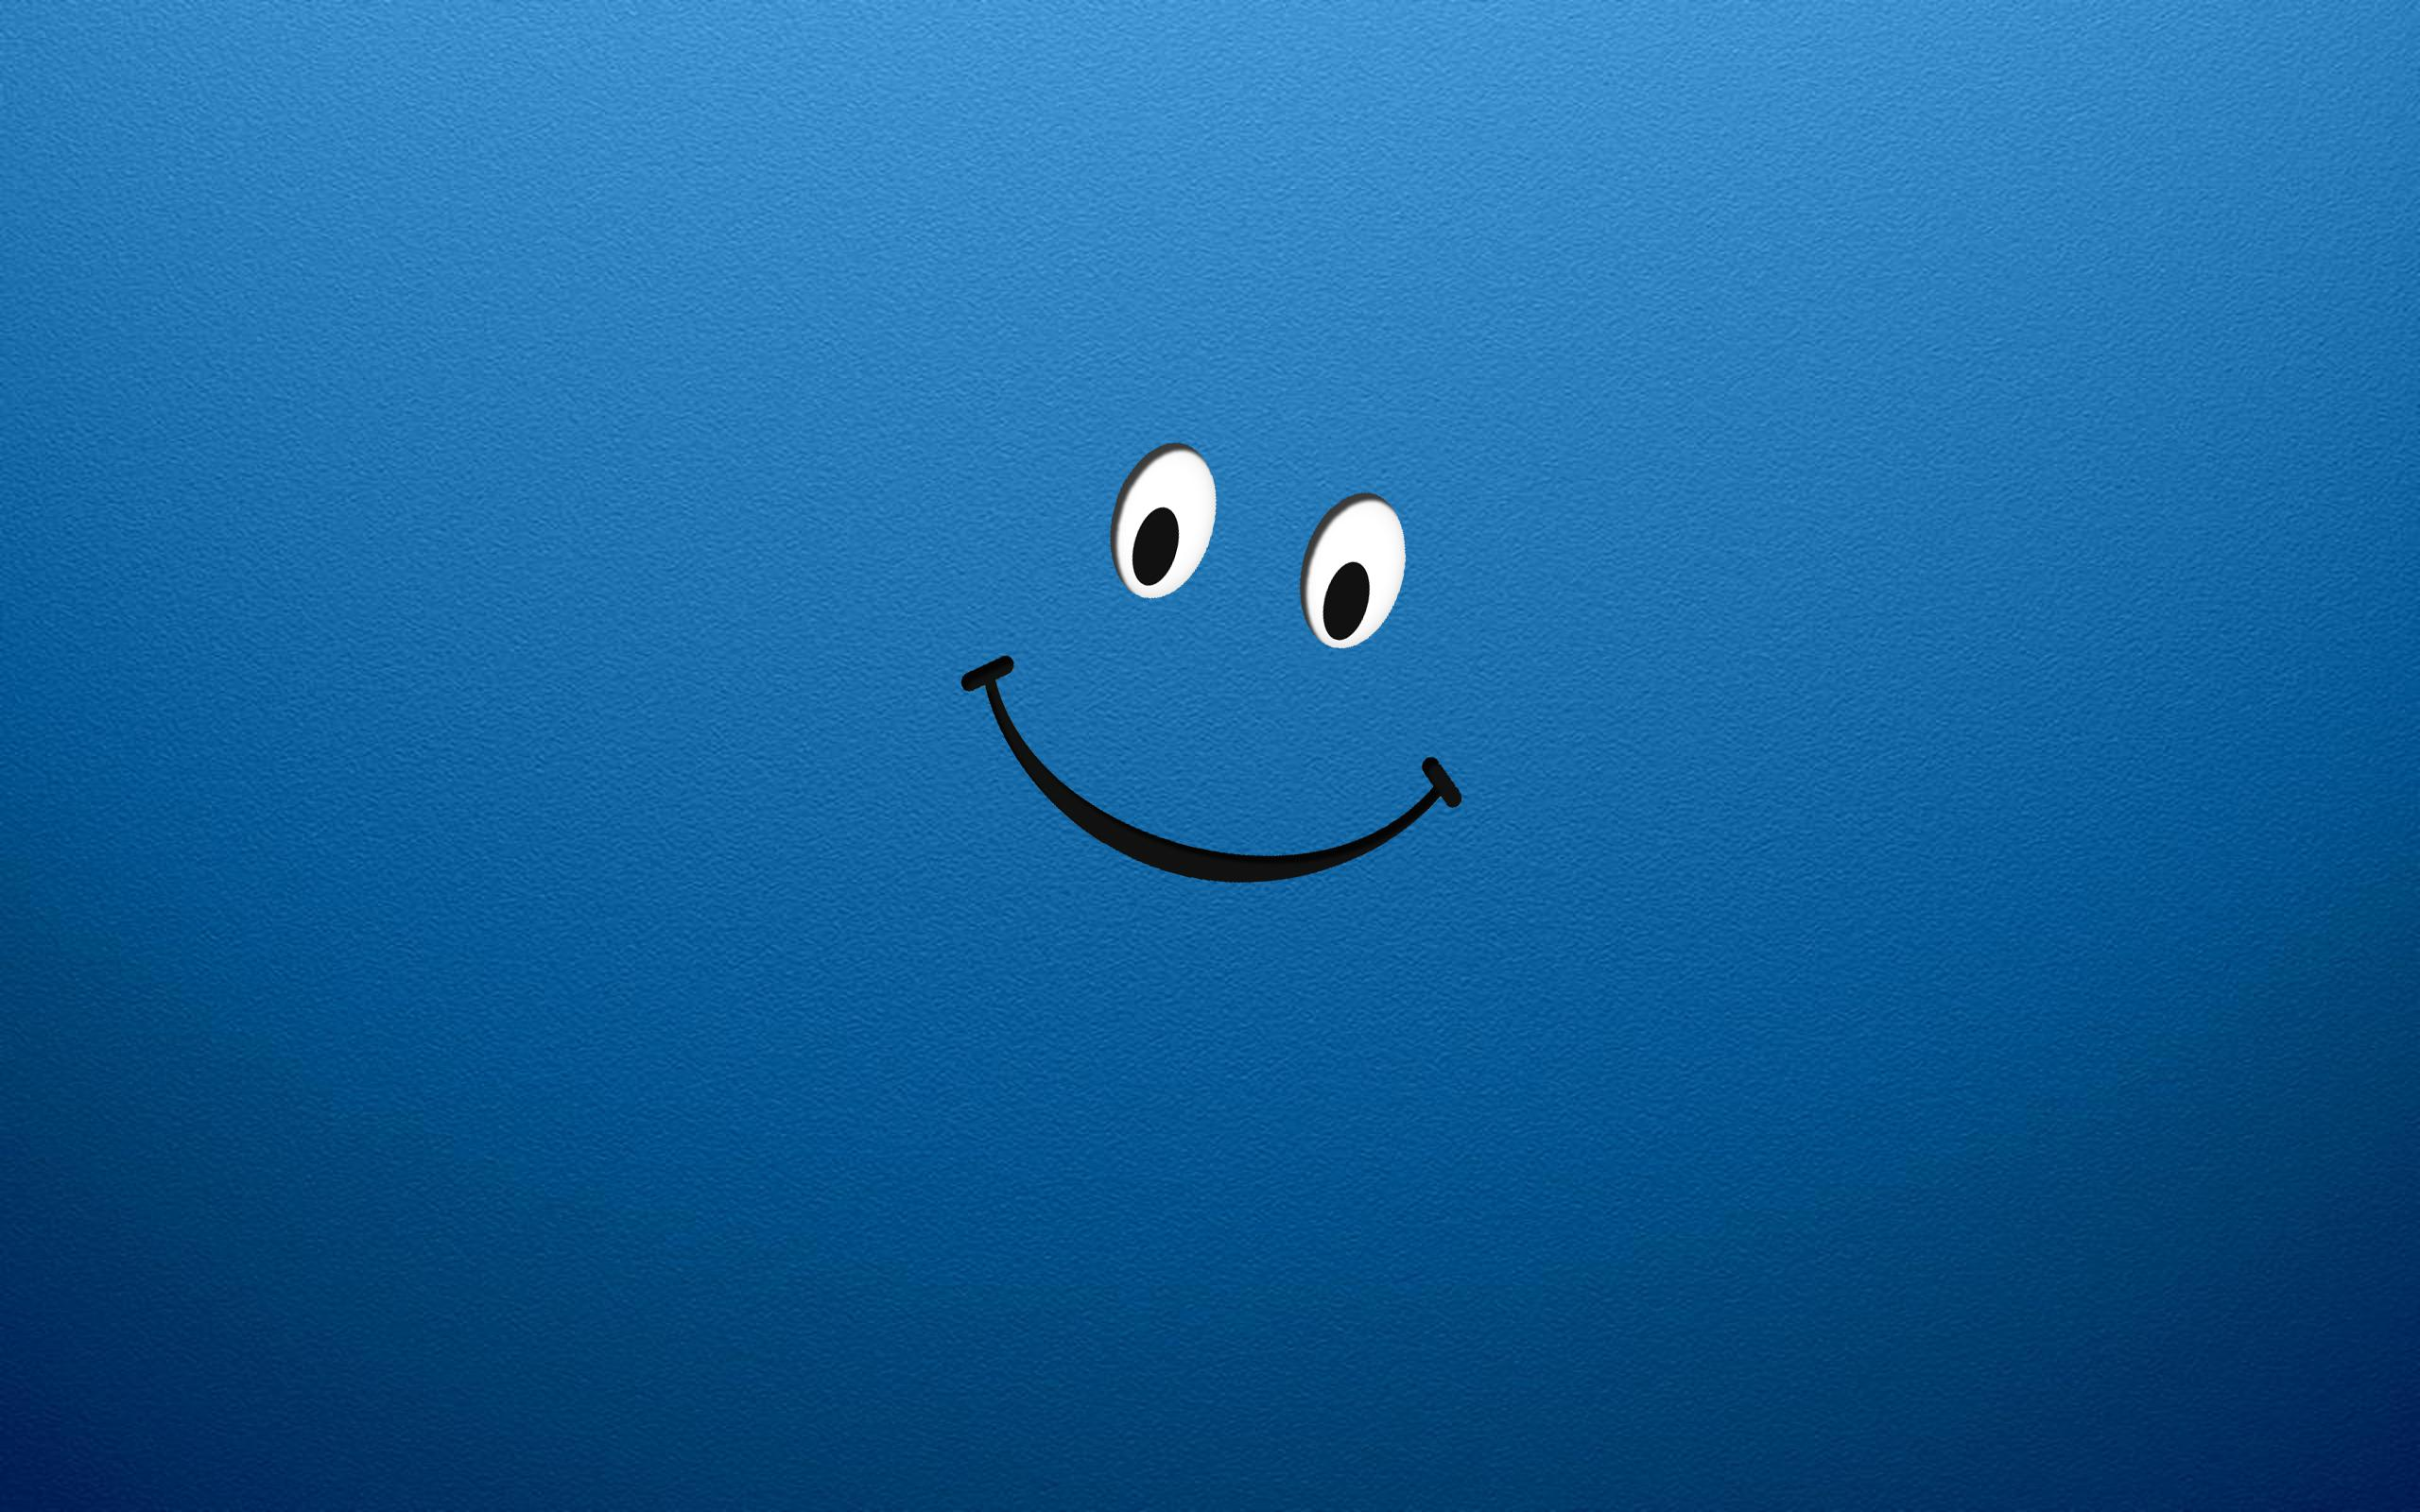 Smile Wallpapers Pictures Images HD Wallpapers Download Free Images Wallpaper [1000image.com]